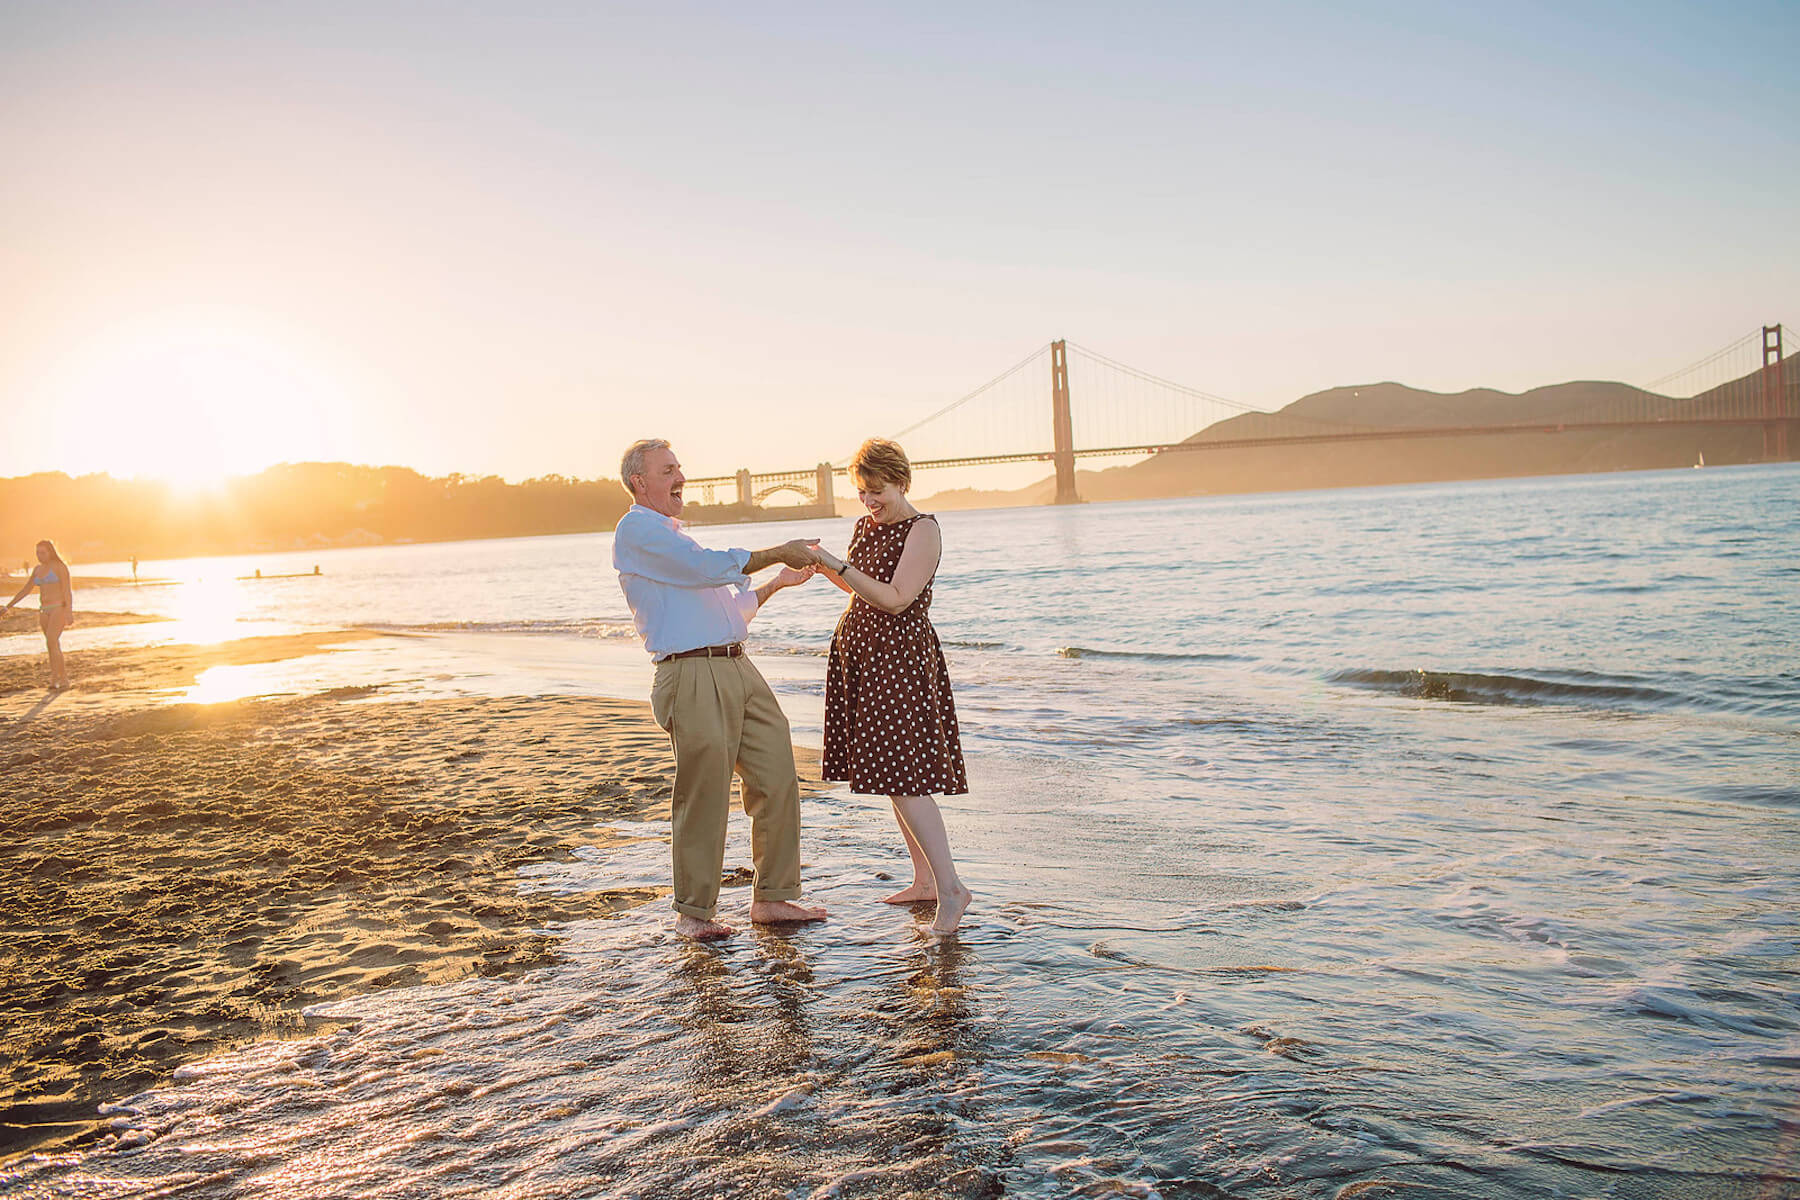 older couple dancing on the beach in San Francisco, California